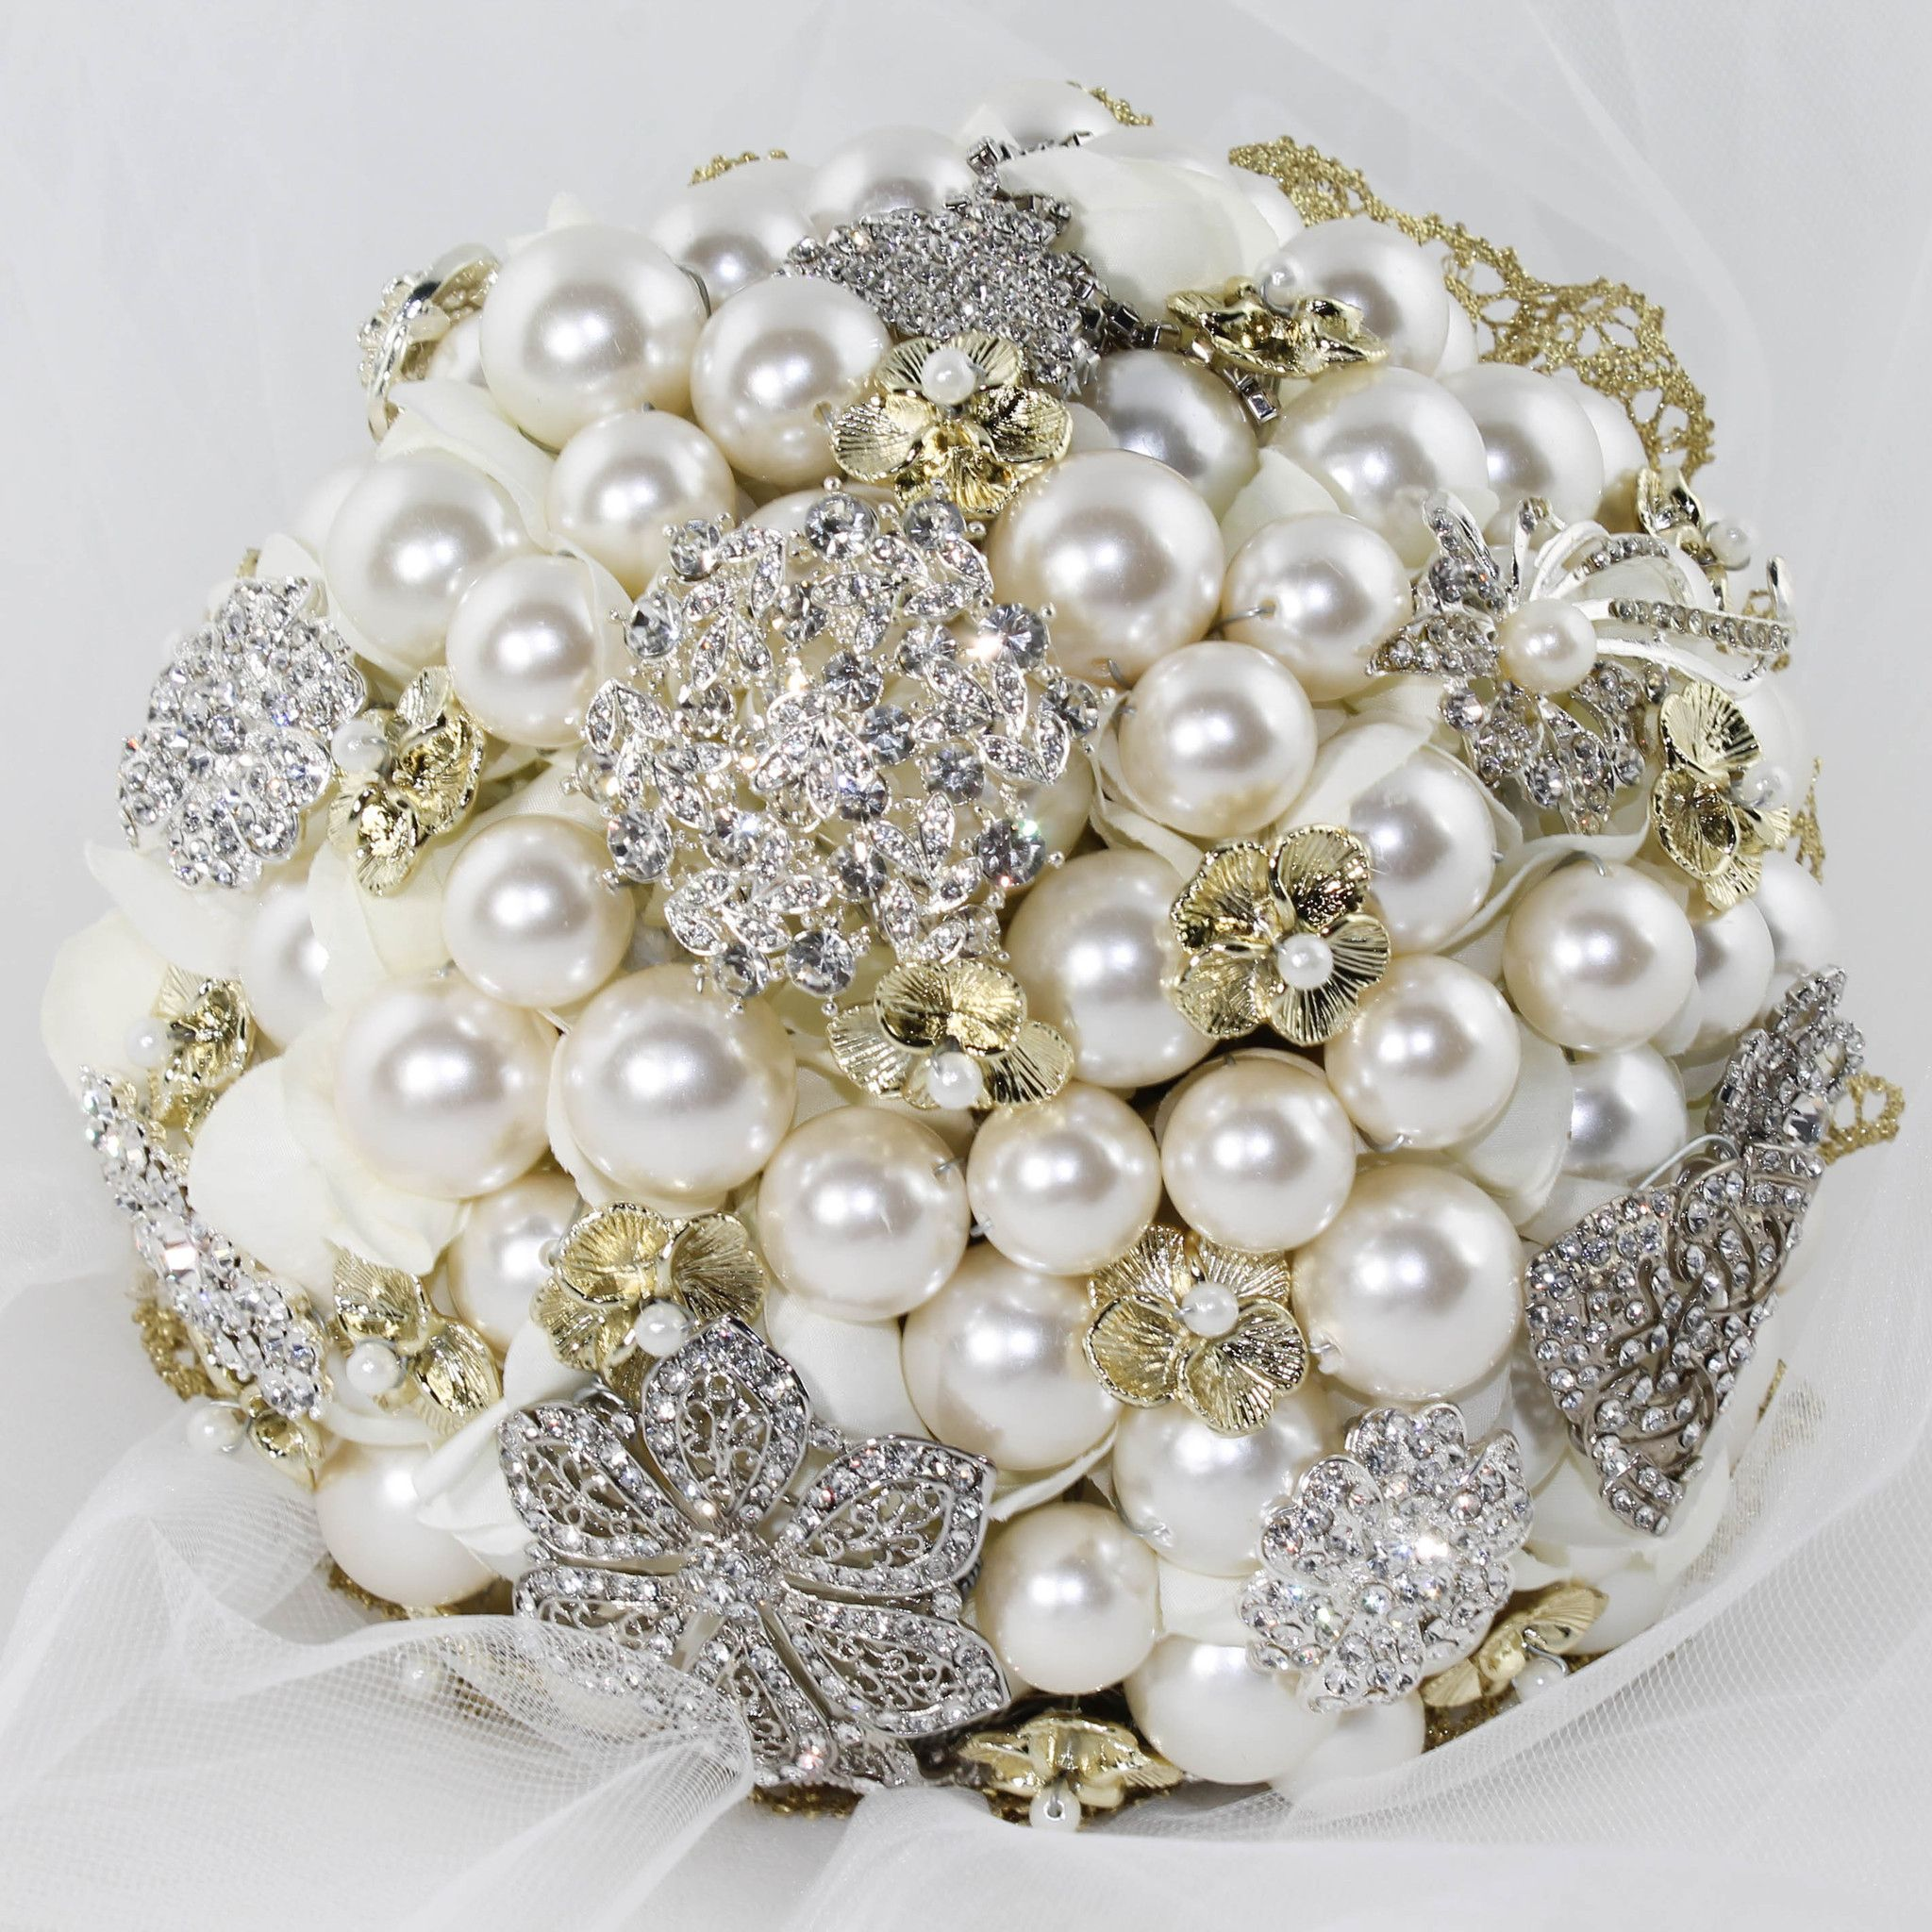 This Bridal Brooch Bouquet Is Handcrafted With Beautiful Golden And